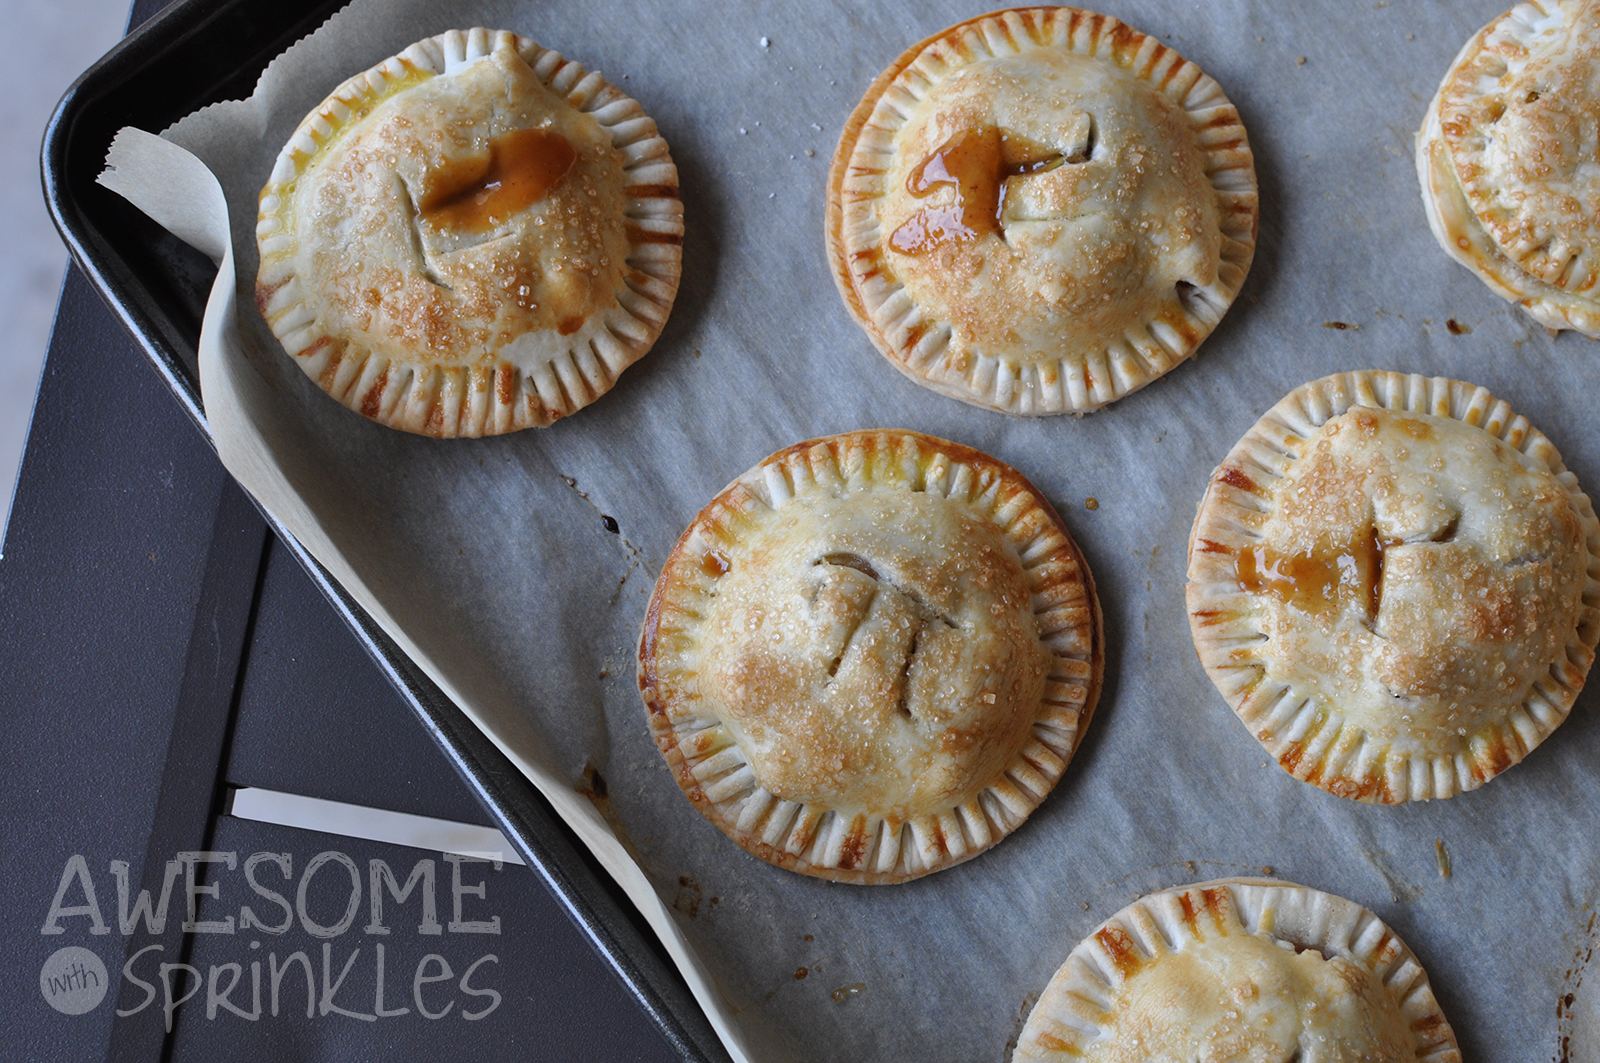 Boozy Apple Hand Pies   Awesome with Sprinkles